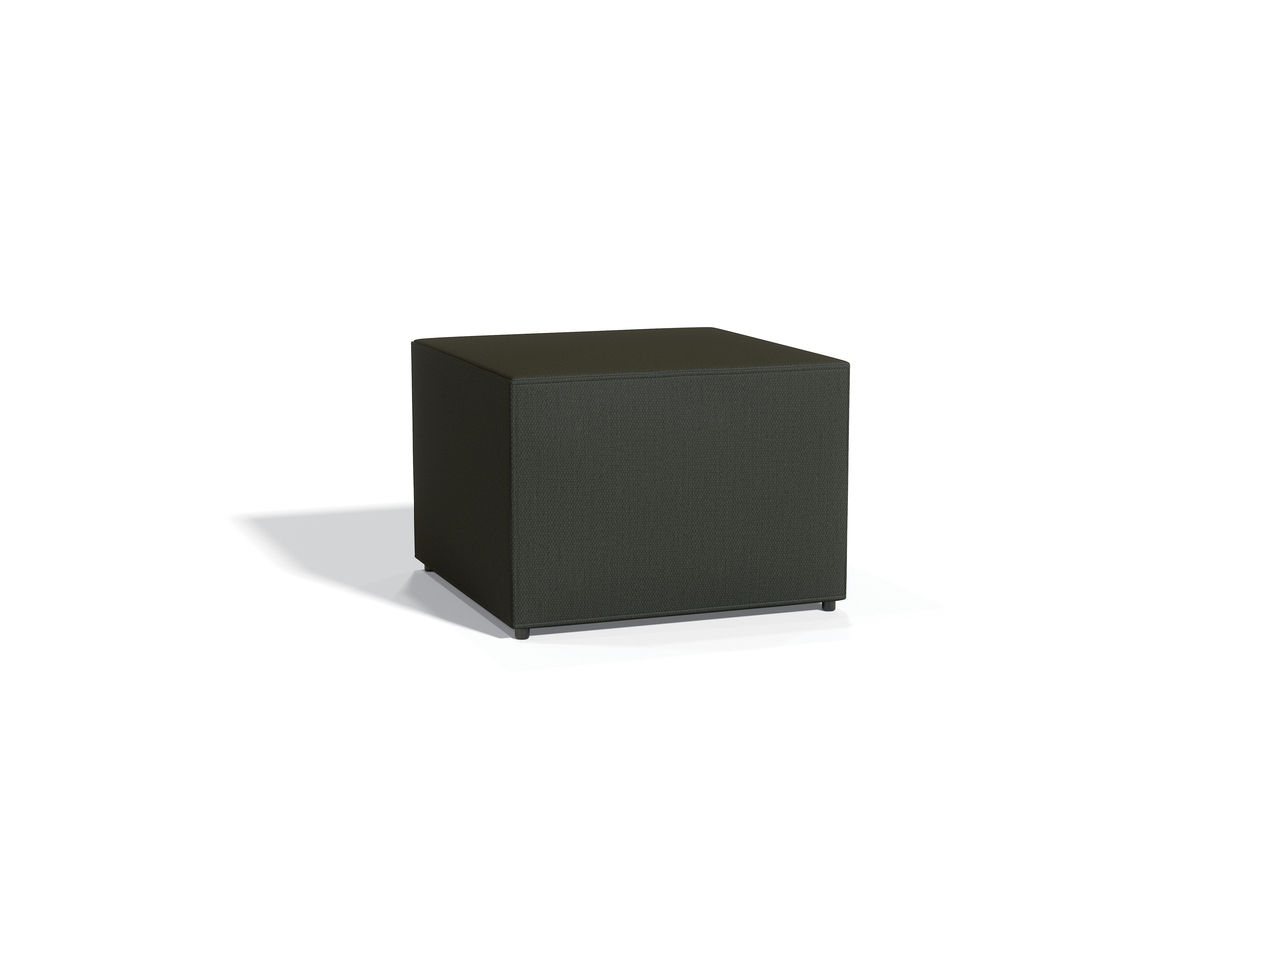 model 13012 square offices to go ottoman in carbon